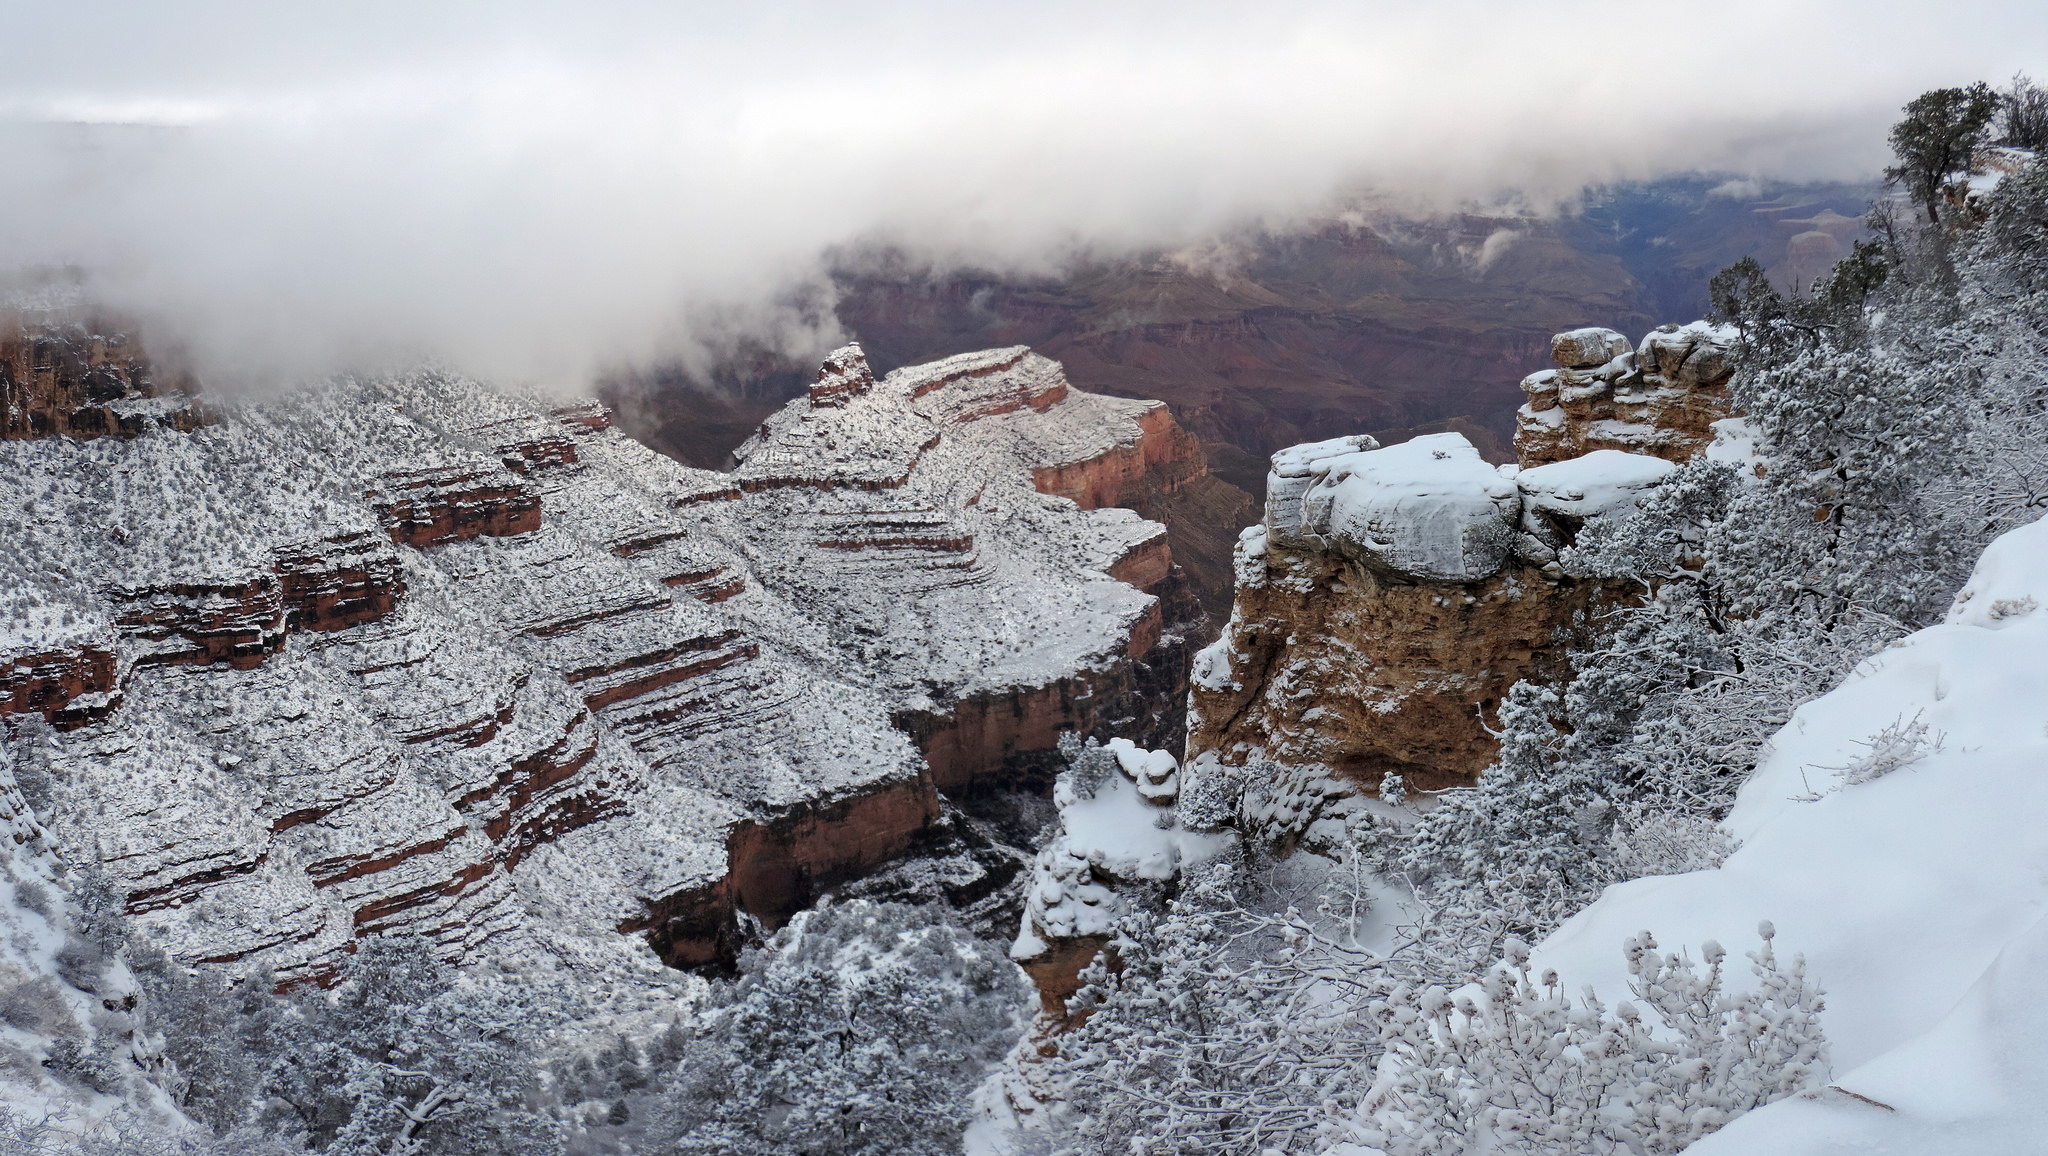 Crowds are not a problem during winter at the Grand Canyon. Photo/National Park Service